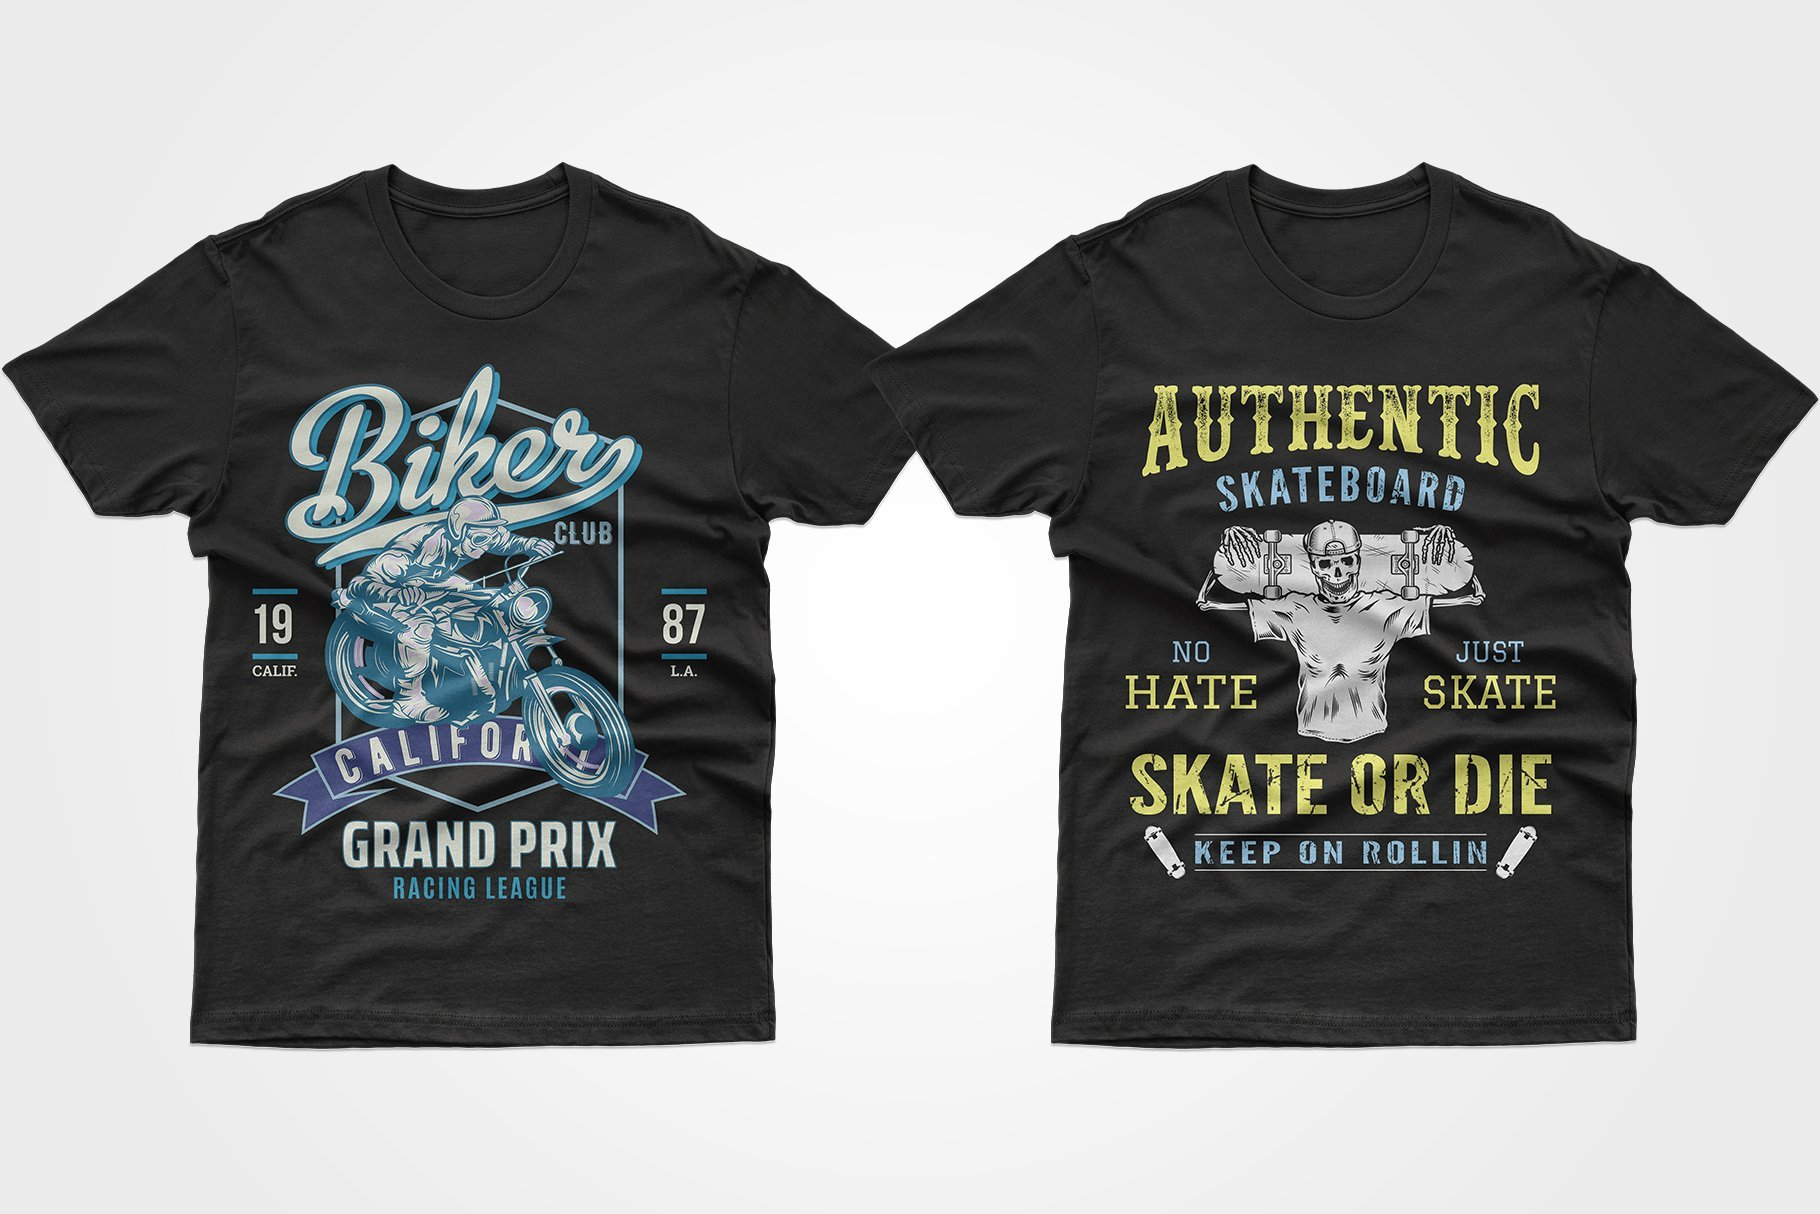 Two black T-shirts - one with blue graphics and a zombie on a motorcycle, the other with a zombie with a skateboard.